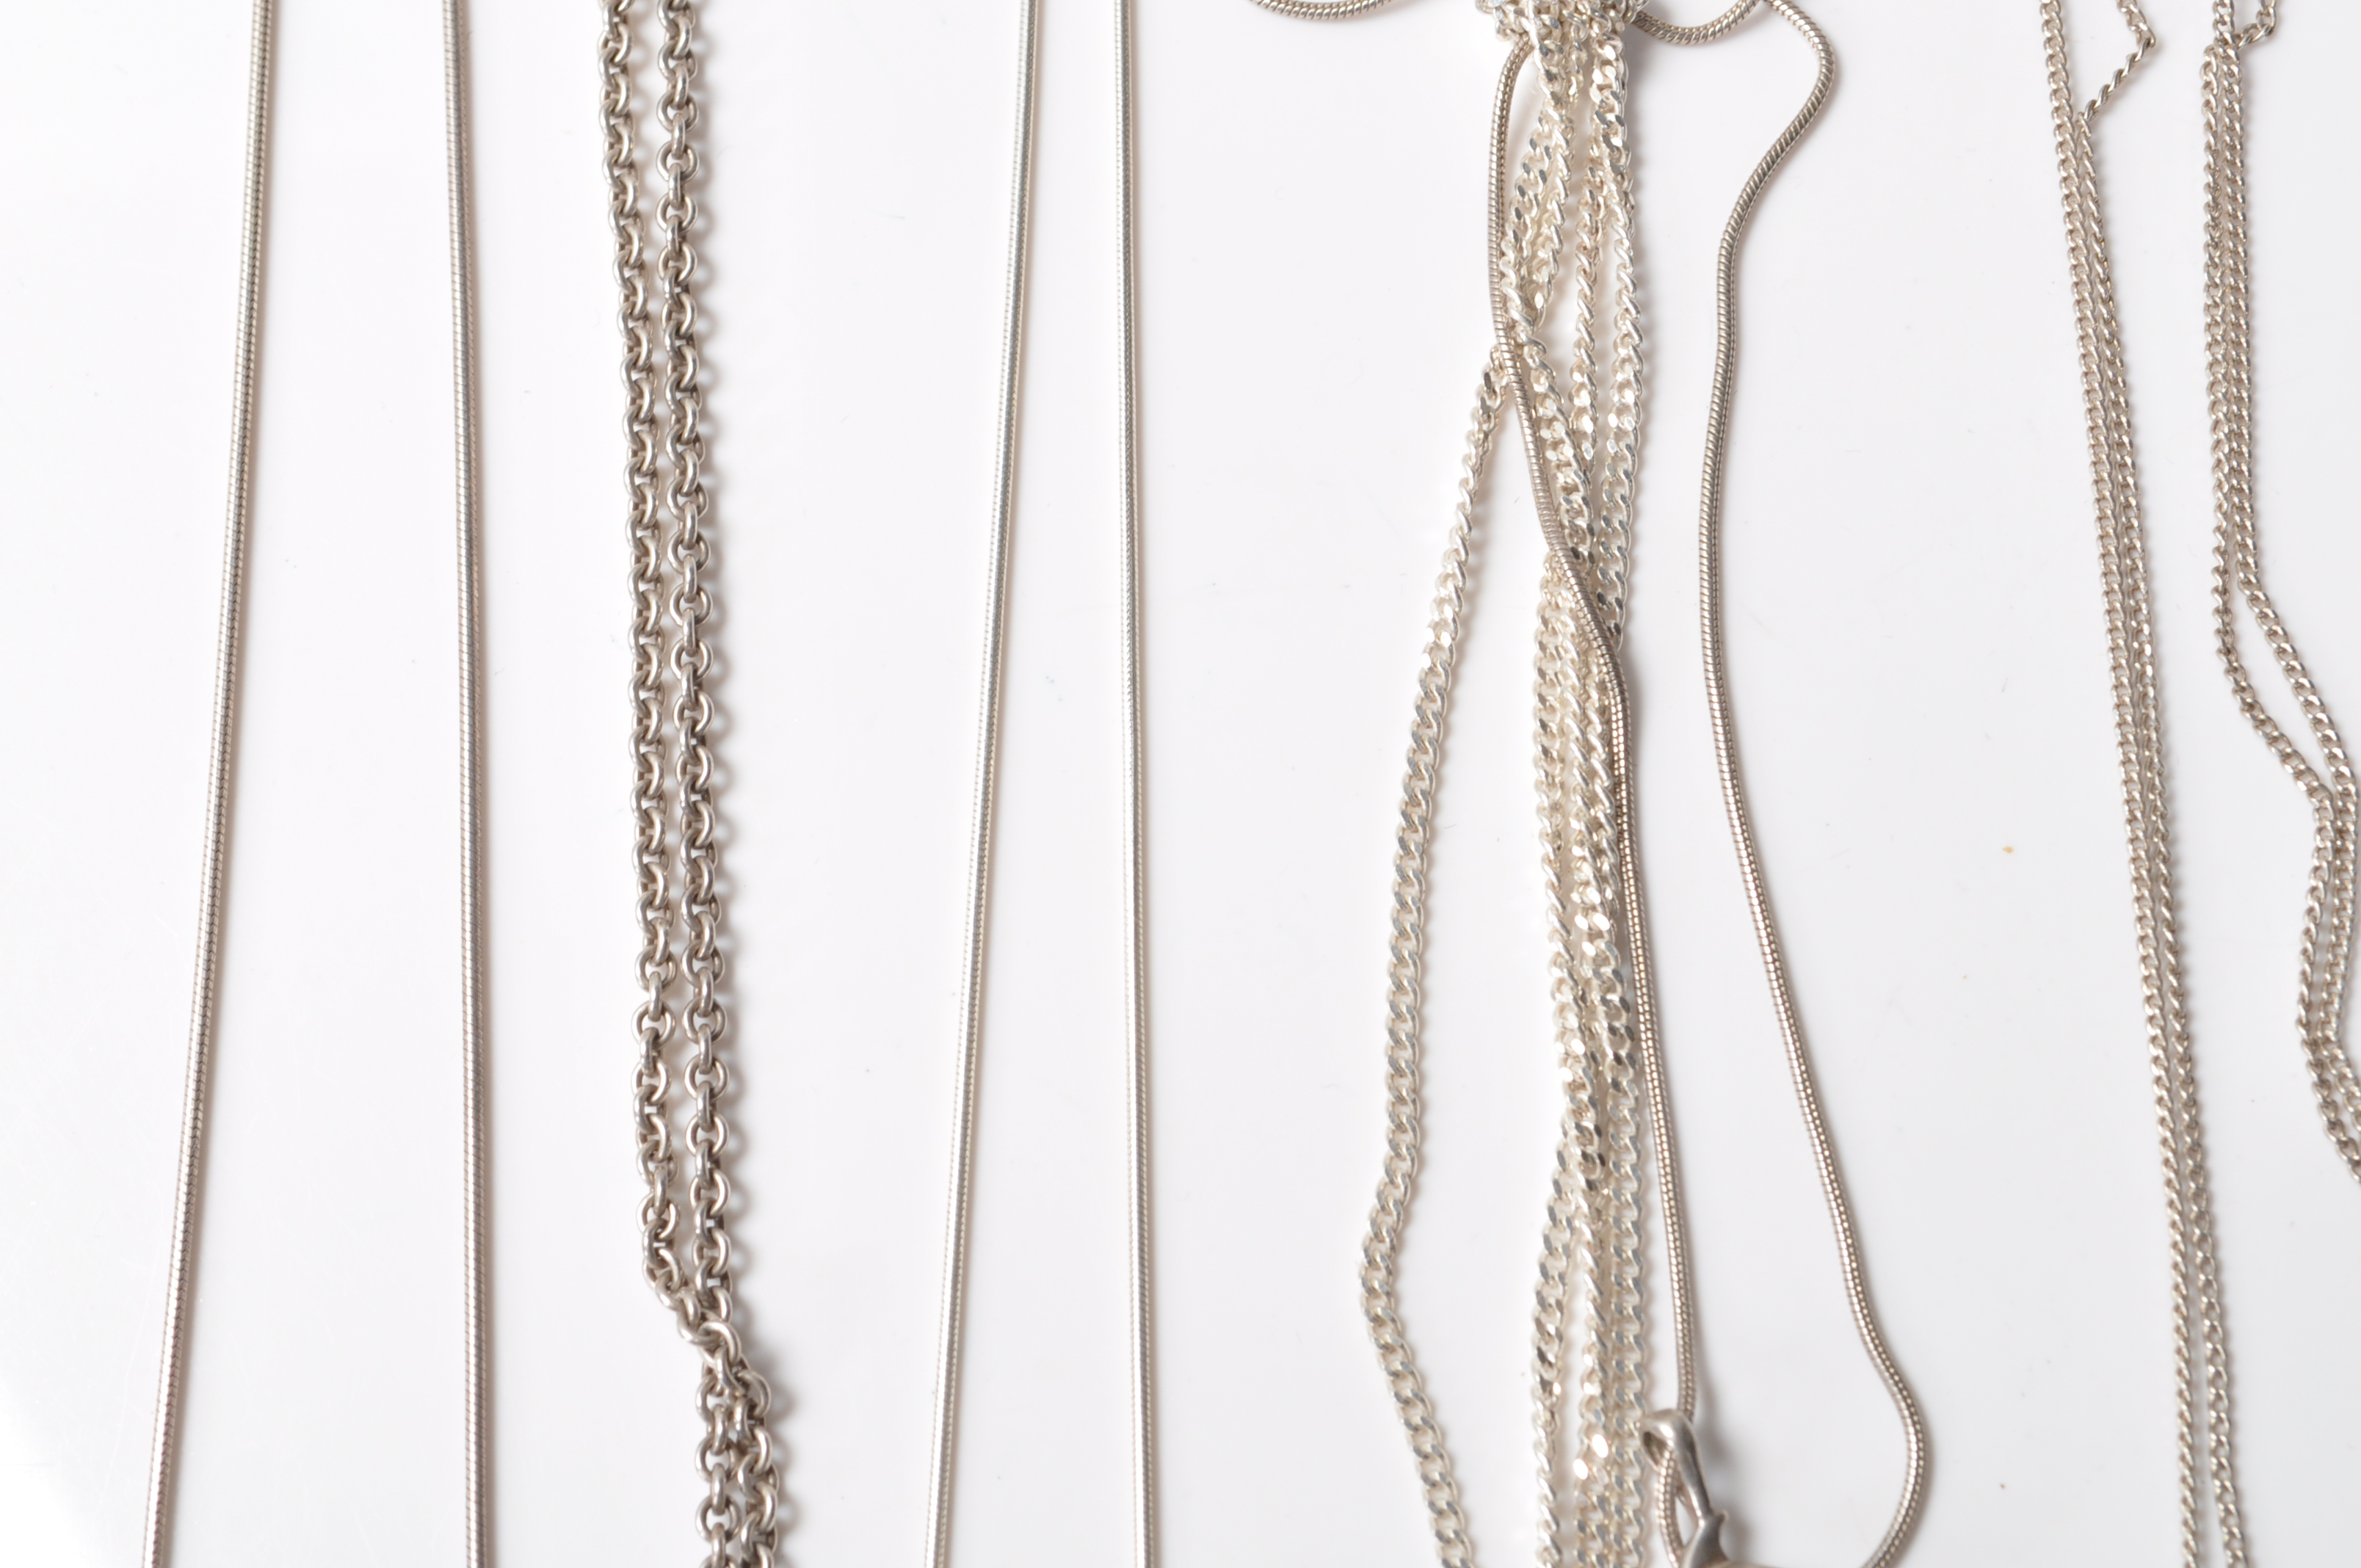 COLLECTION OF STAMPED 925 SILVER NECKLACES AND PENDANTS. - Image 6 of 12